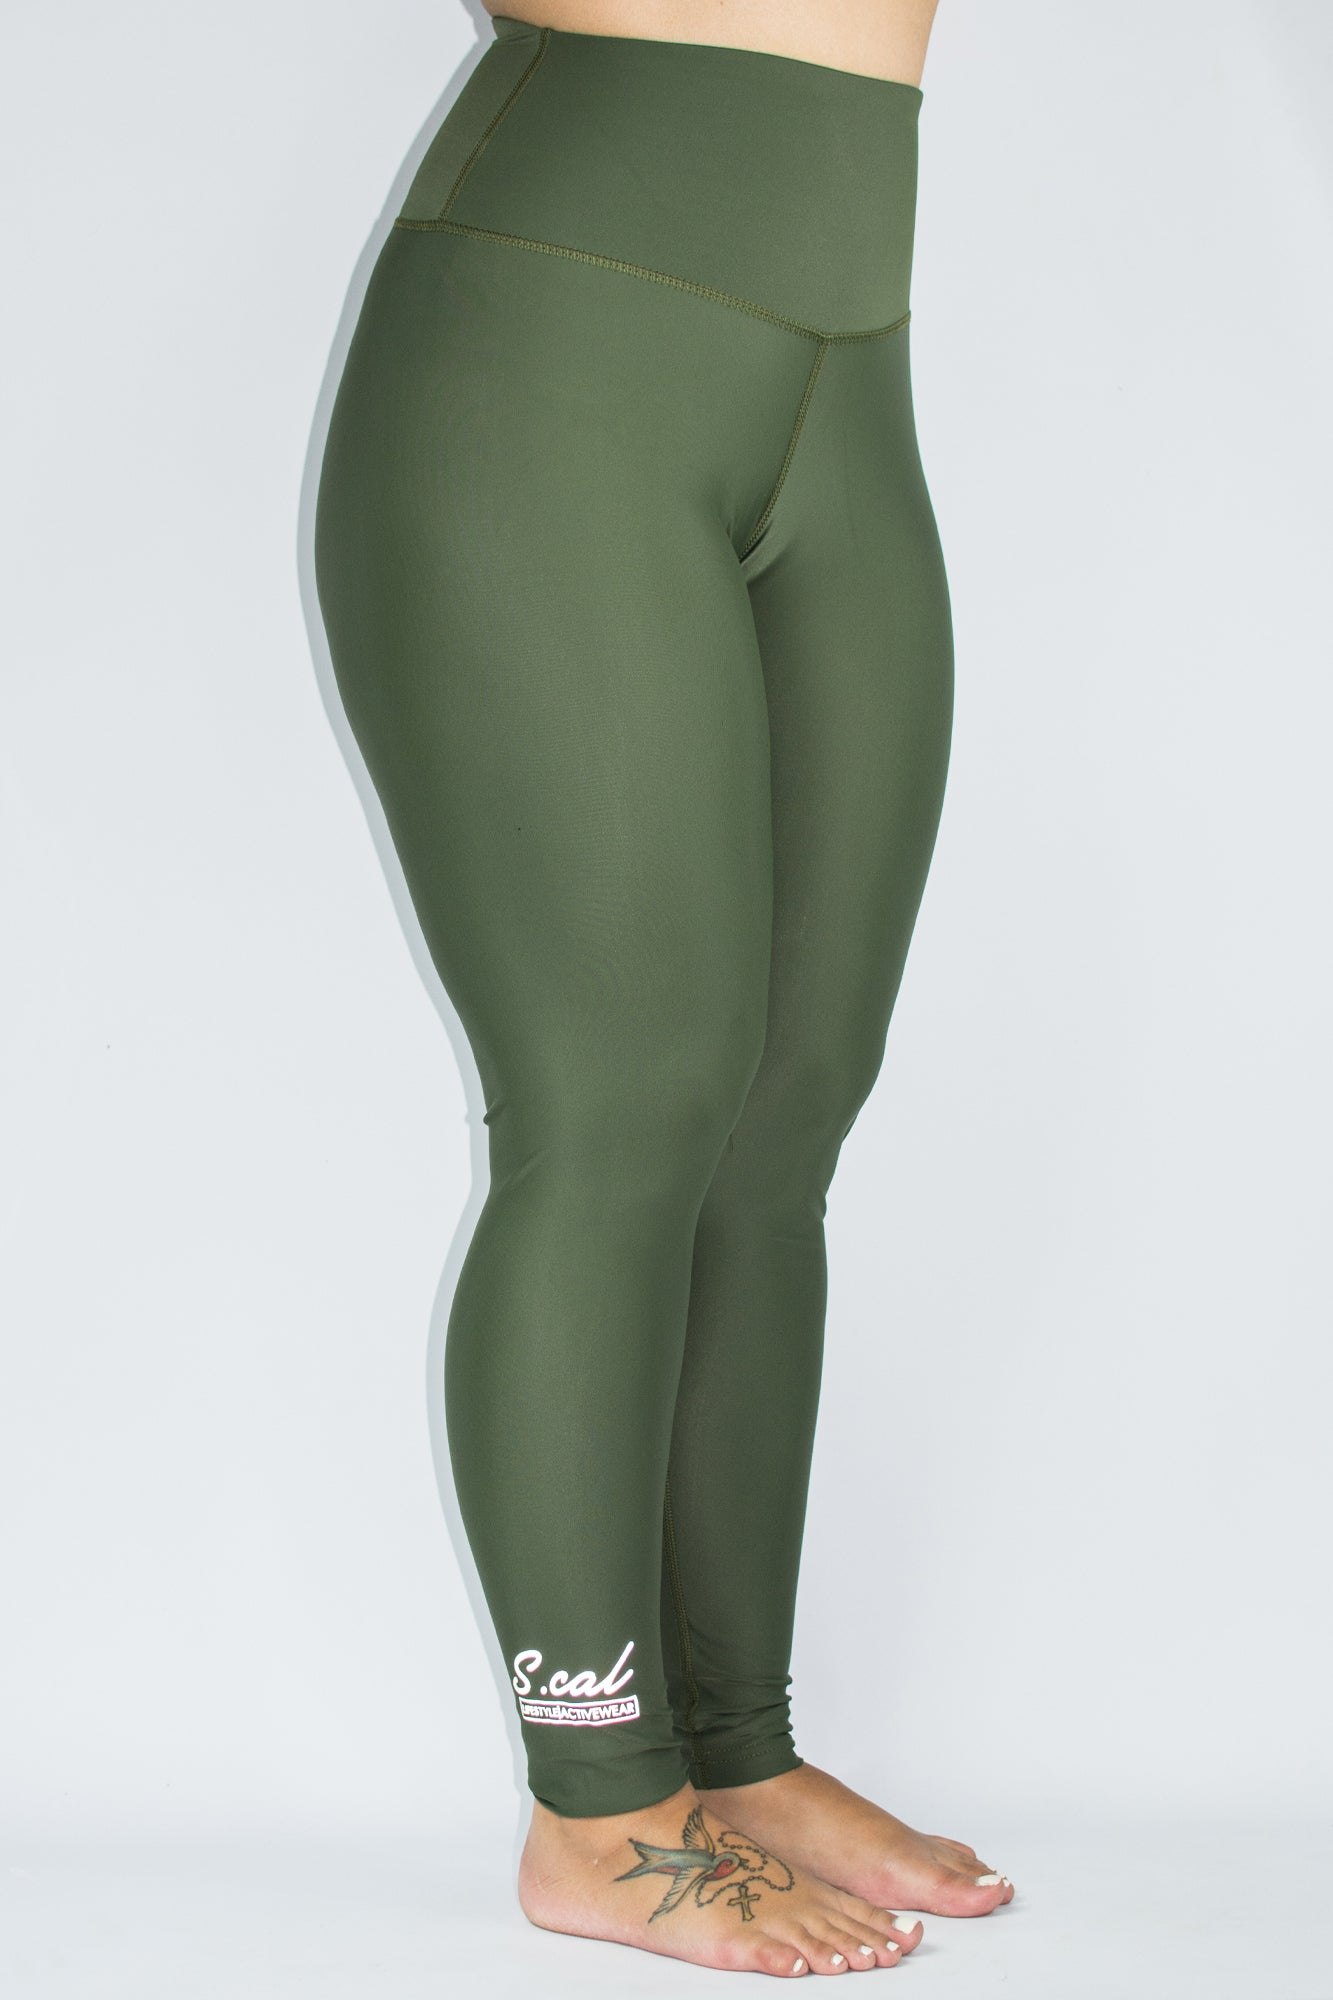 1ac7d74410ed9 Women's High Waist Leggings - Olive | Gym Leggings - Scal Clothing